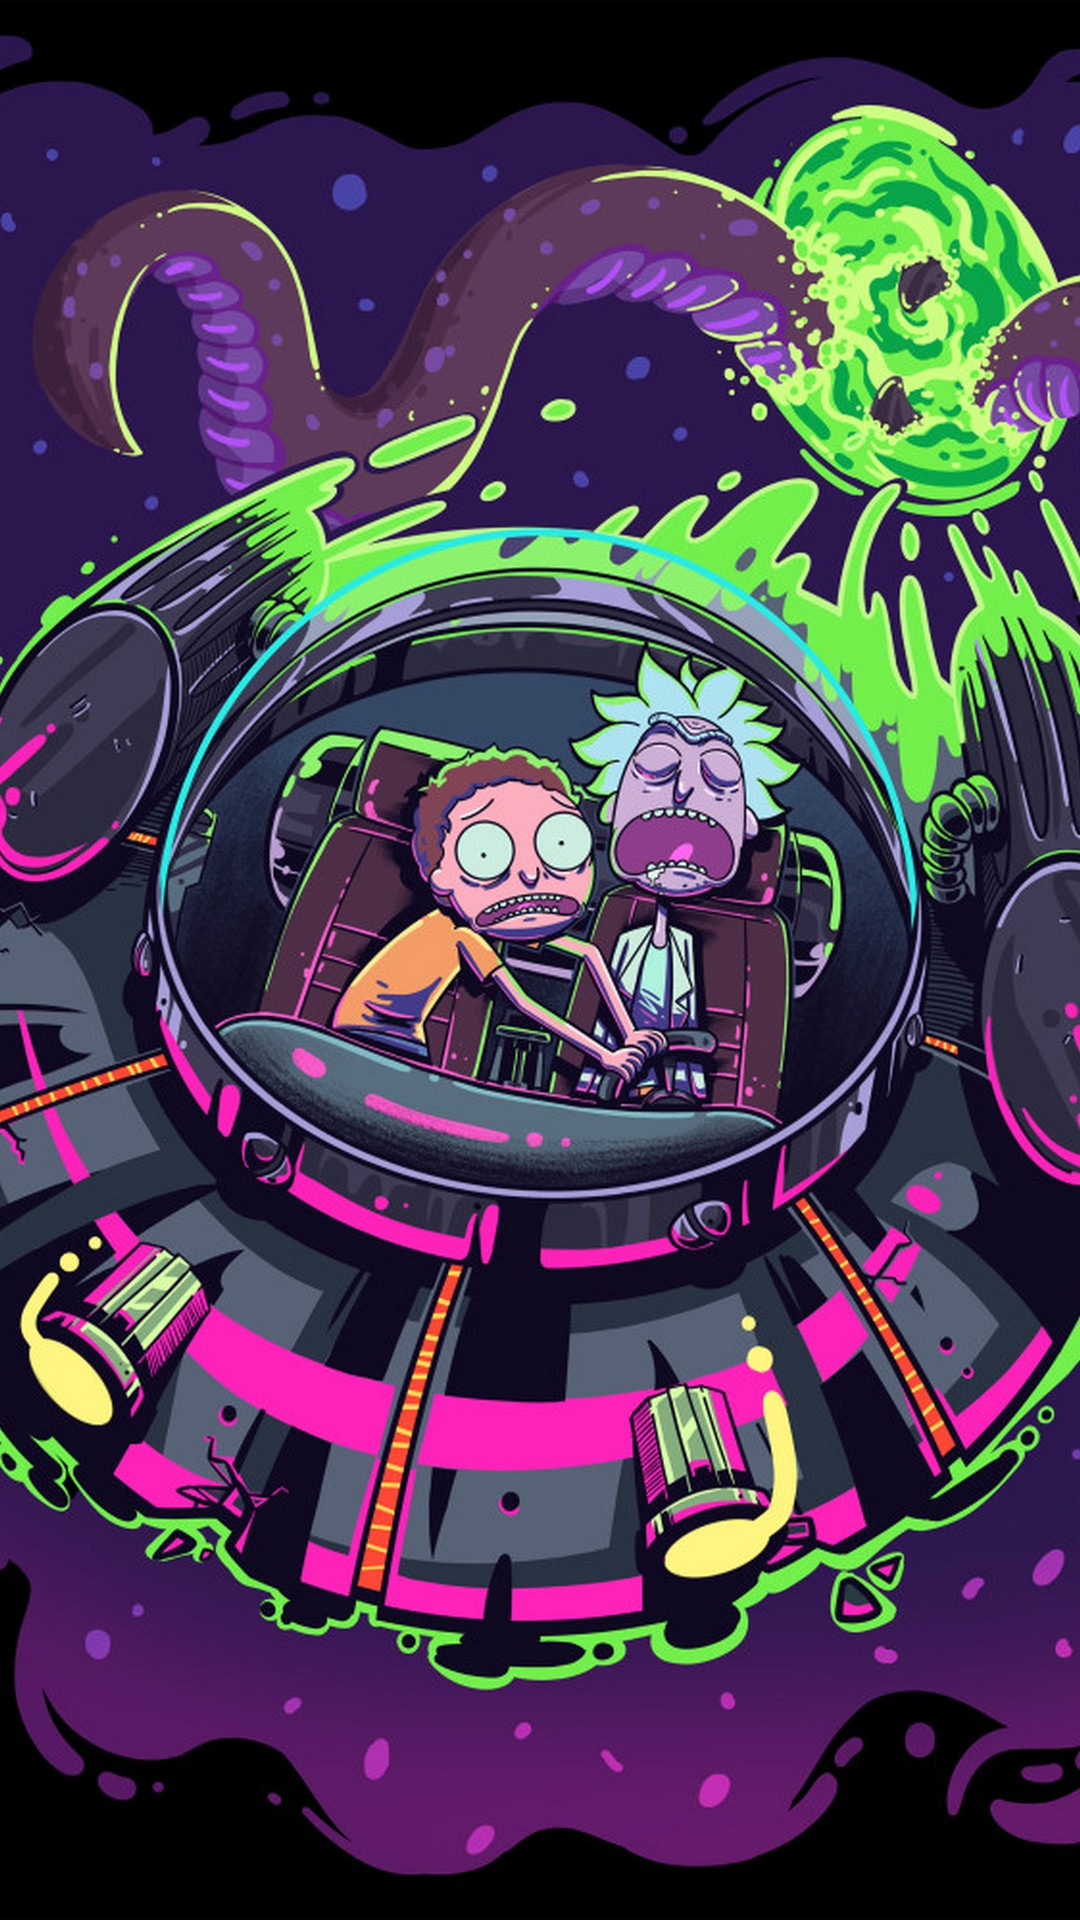 Pink Cute Wallpaper For Iphone 5 Wallpaper Rick And Morty Iphone Background 3d Iphone